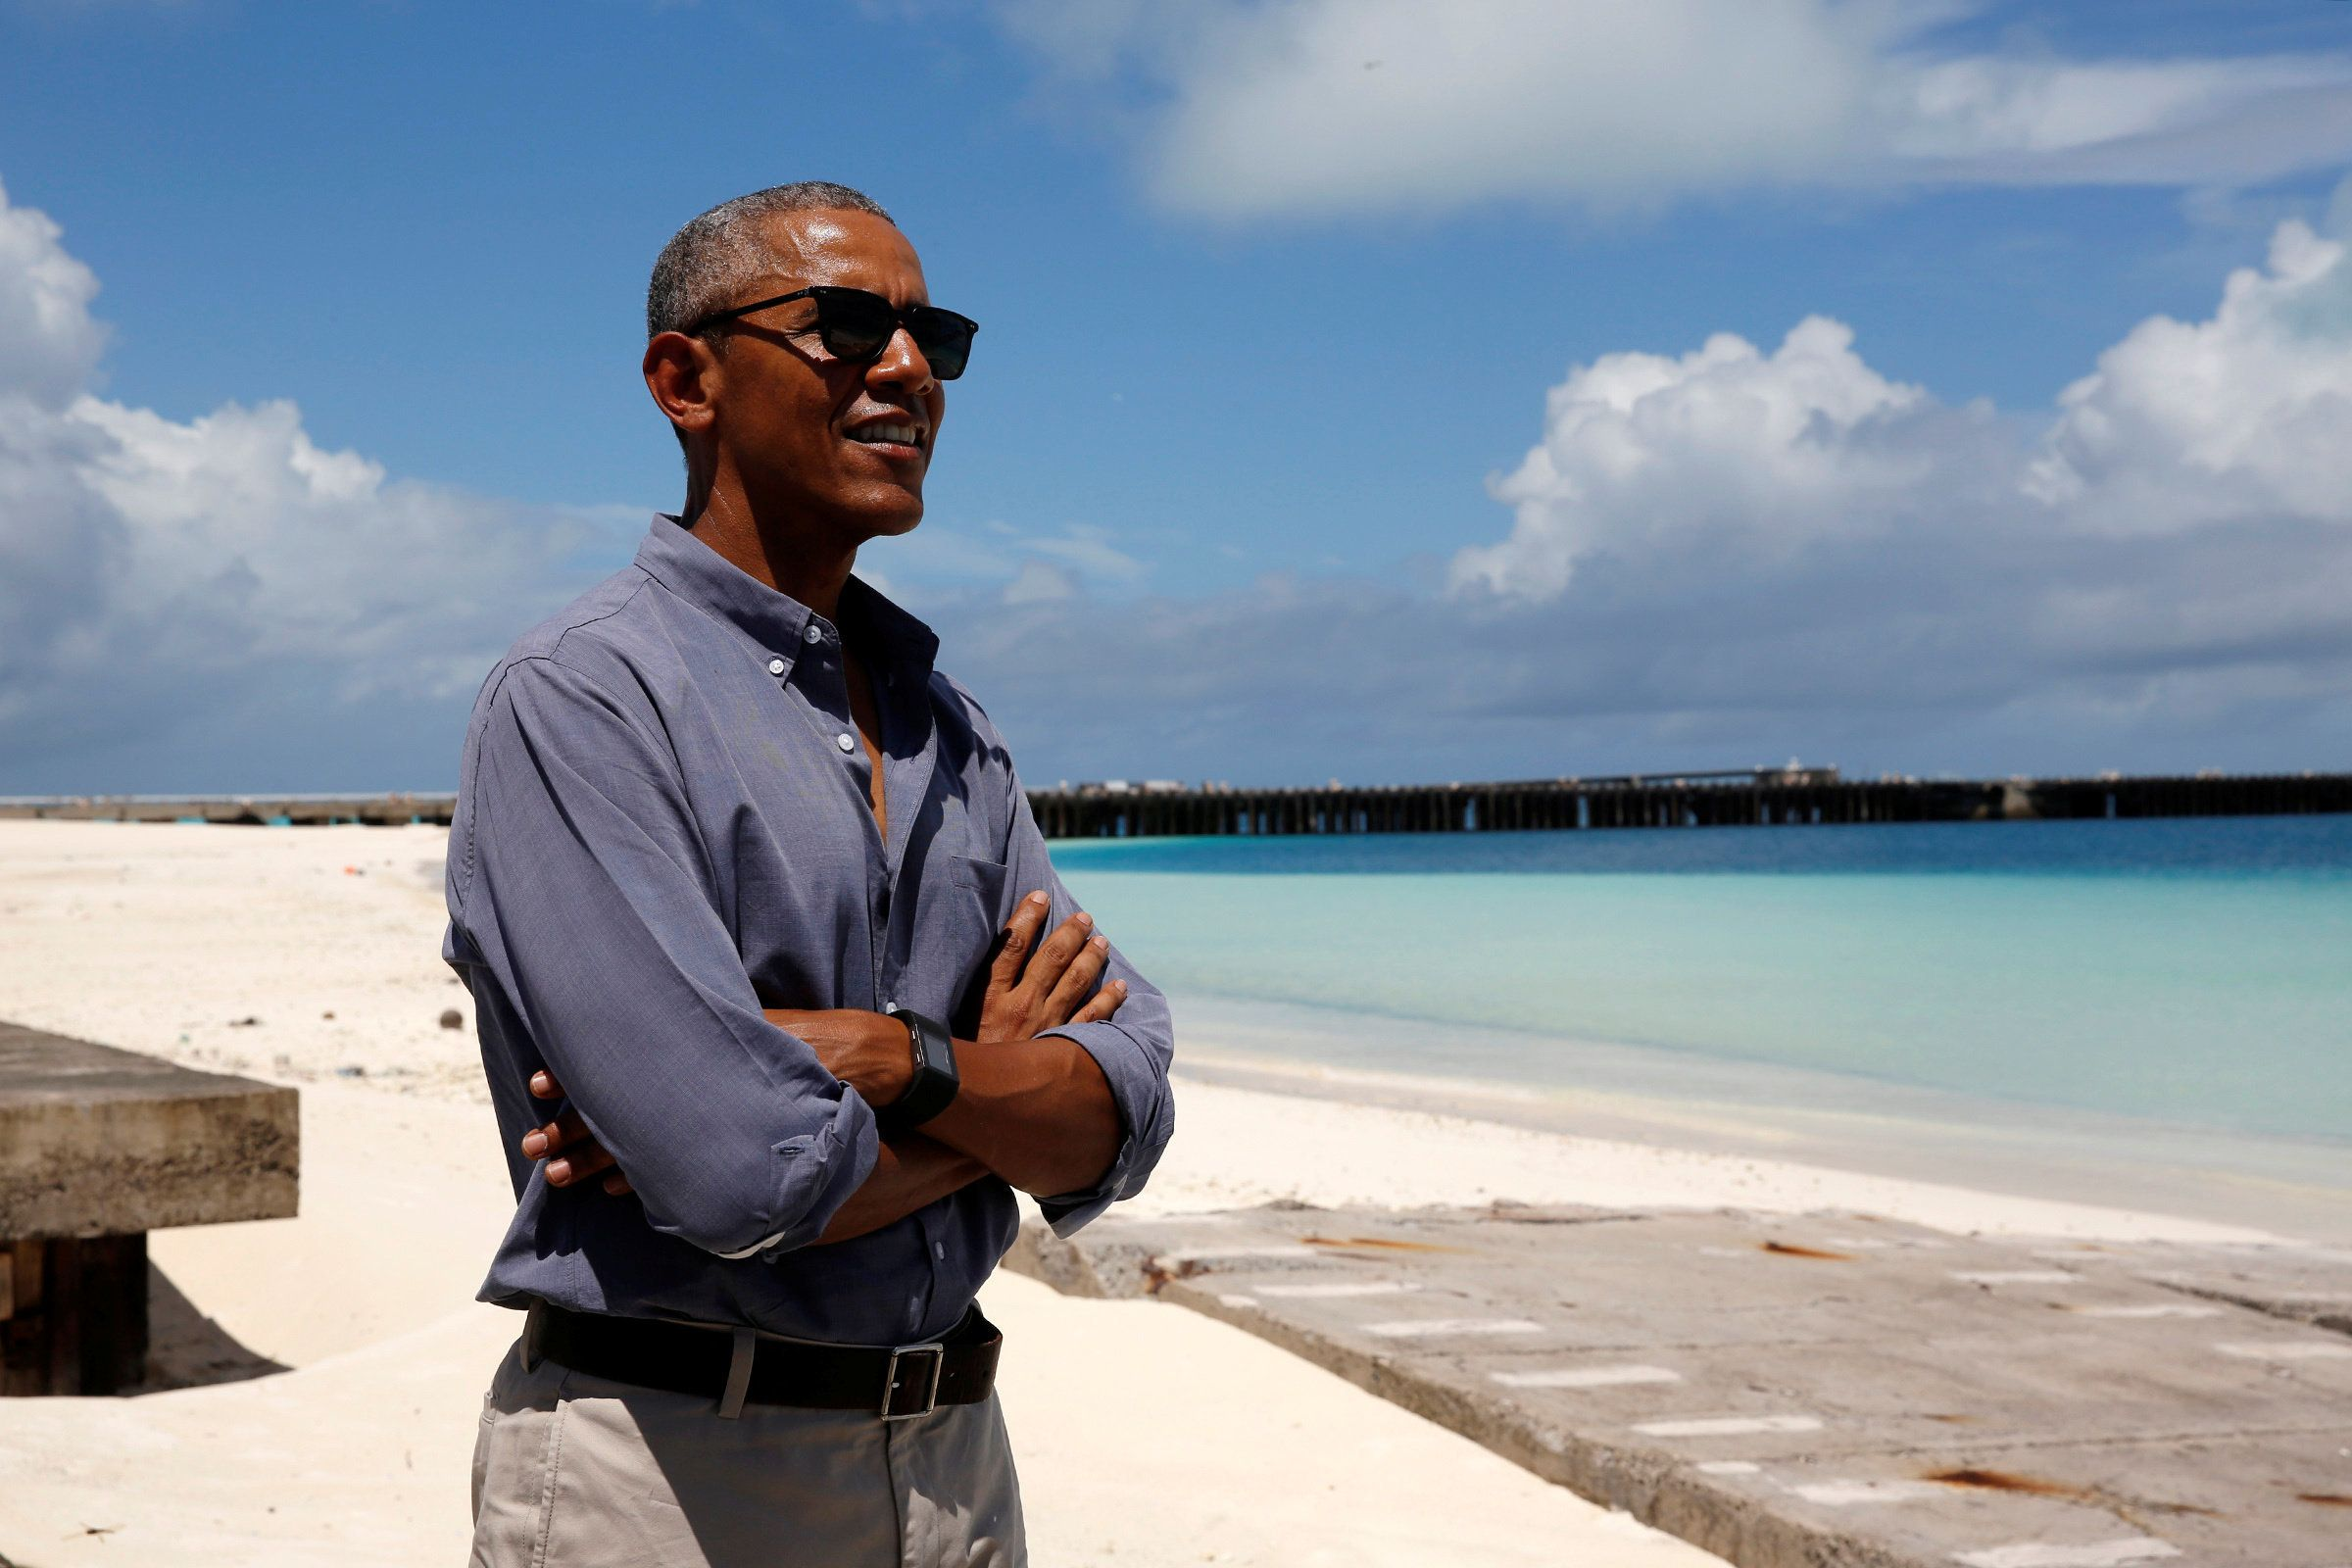 Yes, this is a real photo, but it's not on Tetiaroa.Barack Obama smiles as he looks out at Turtle Beach on a visit to Papahanaumokuakea Marine National Monument, Midway Atoll, U.S., September 1, 2016.